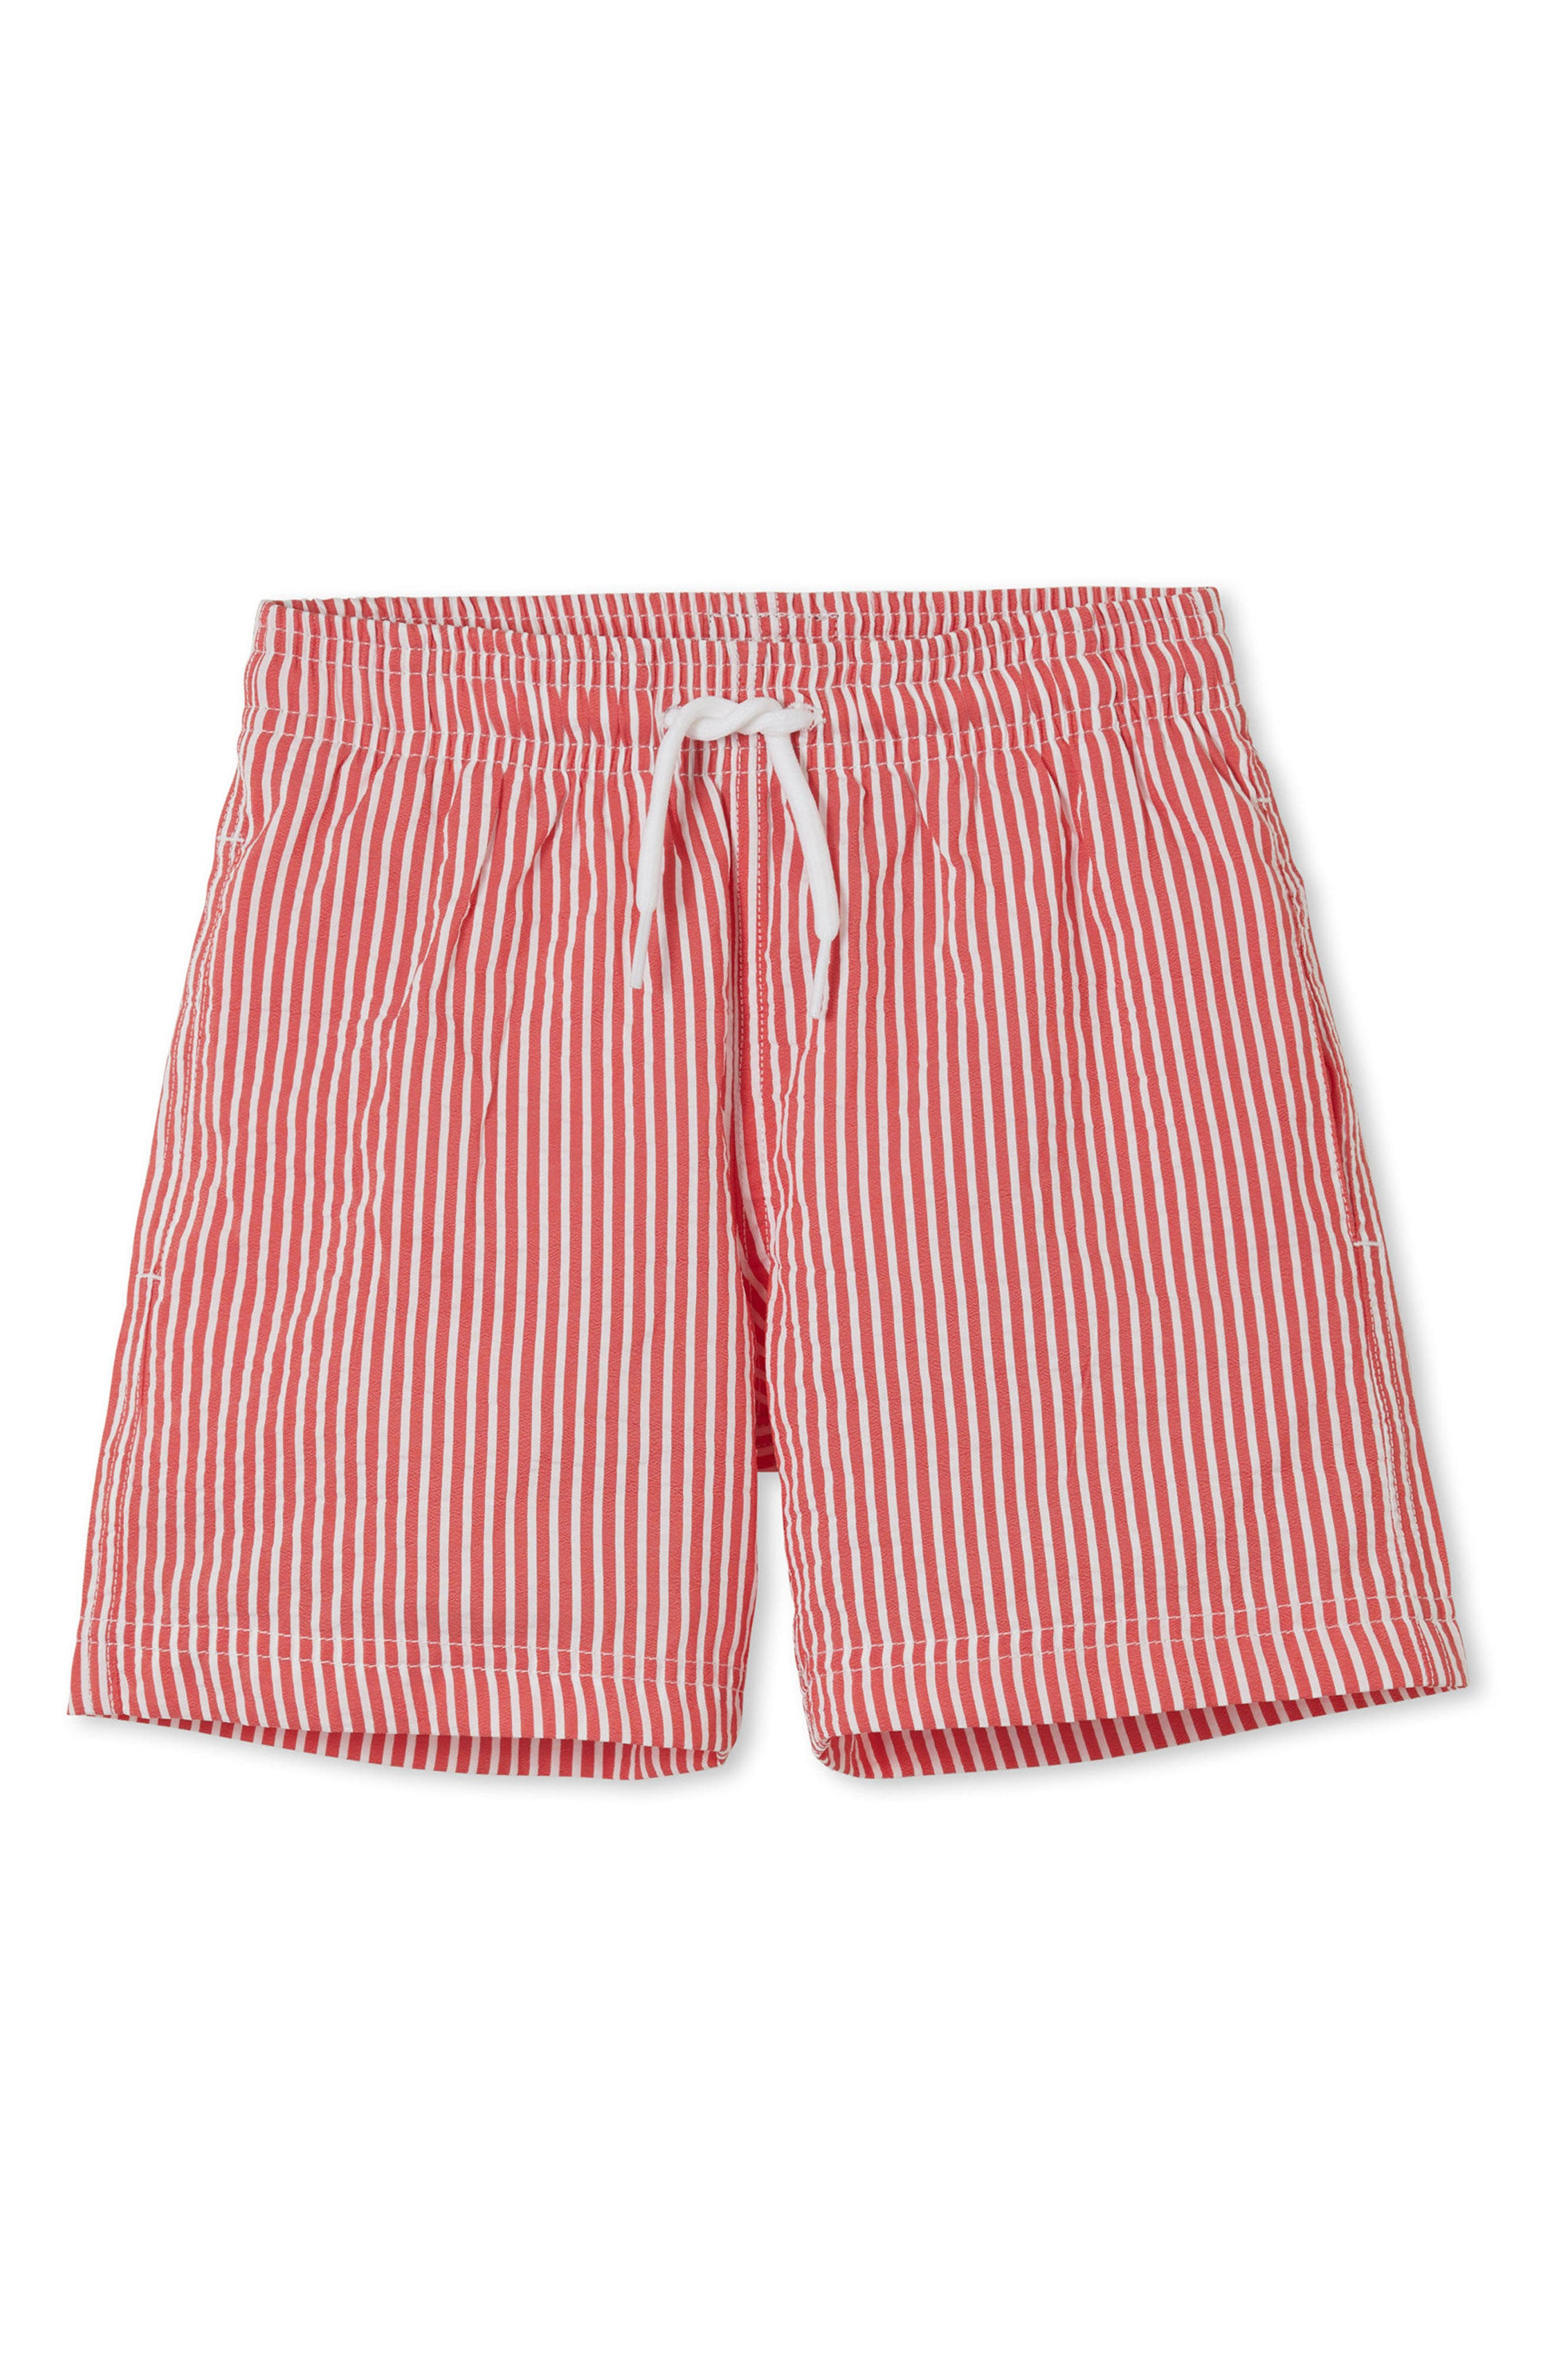 Red Stripe Swim Trunks,                         Main,                         color, Red